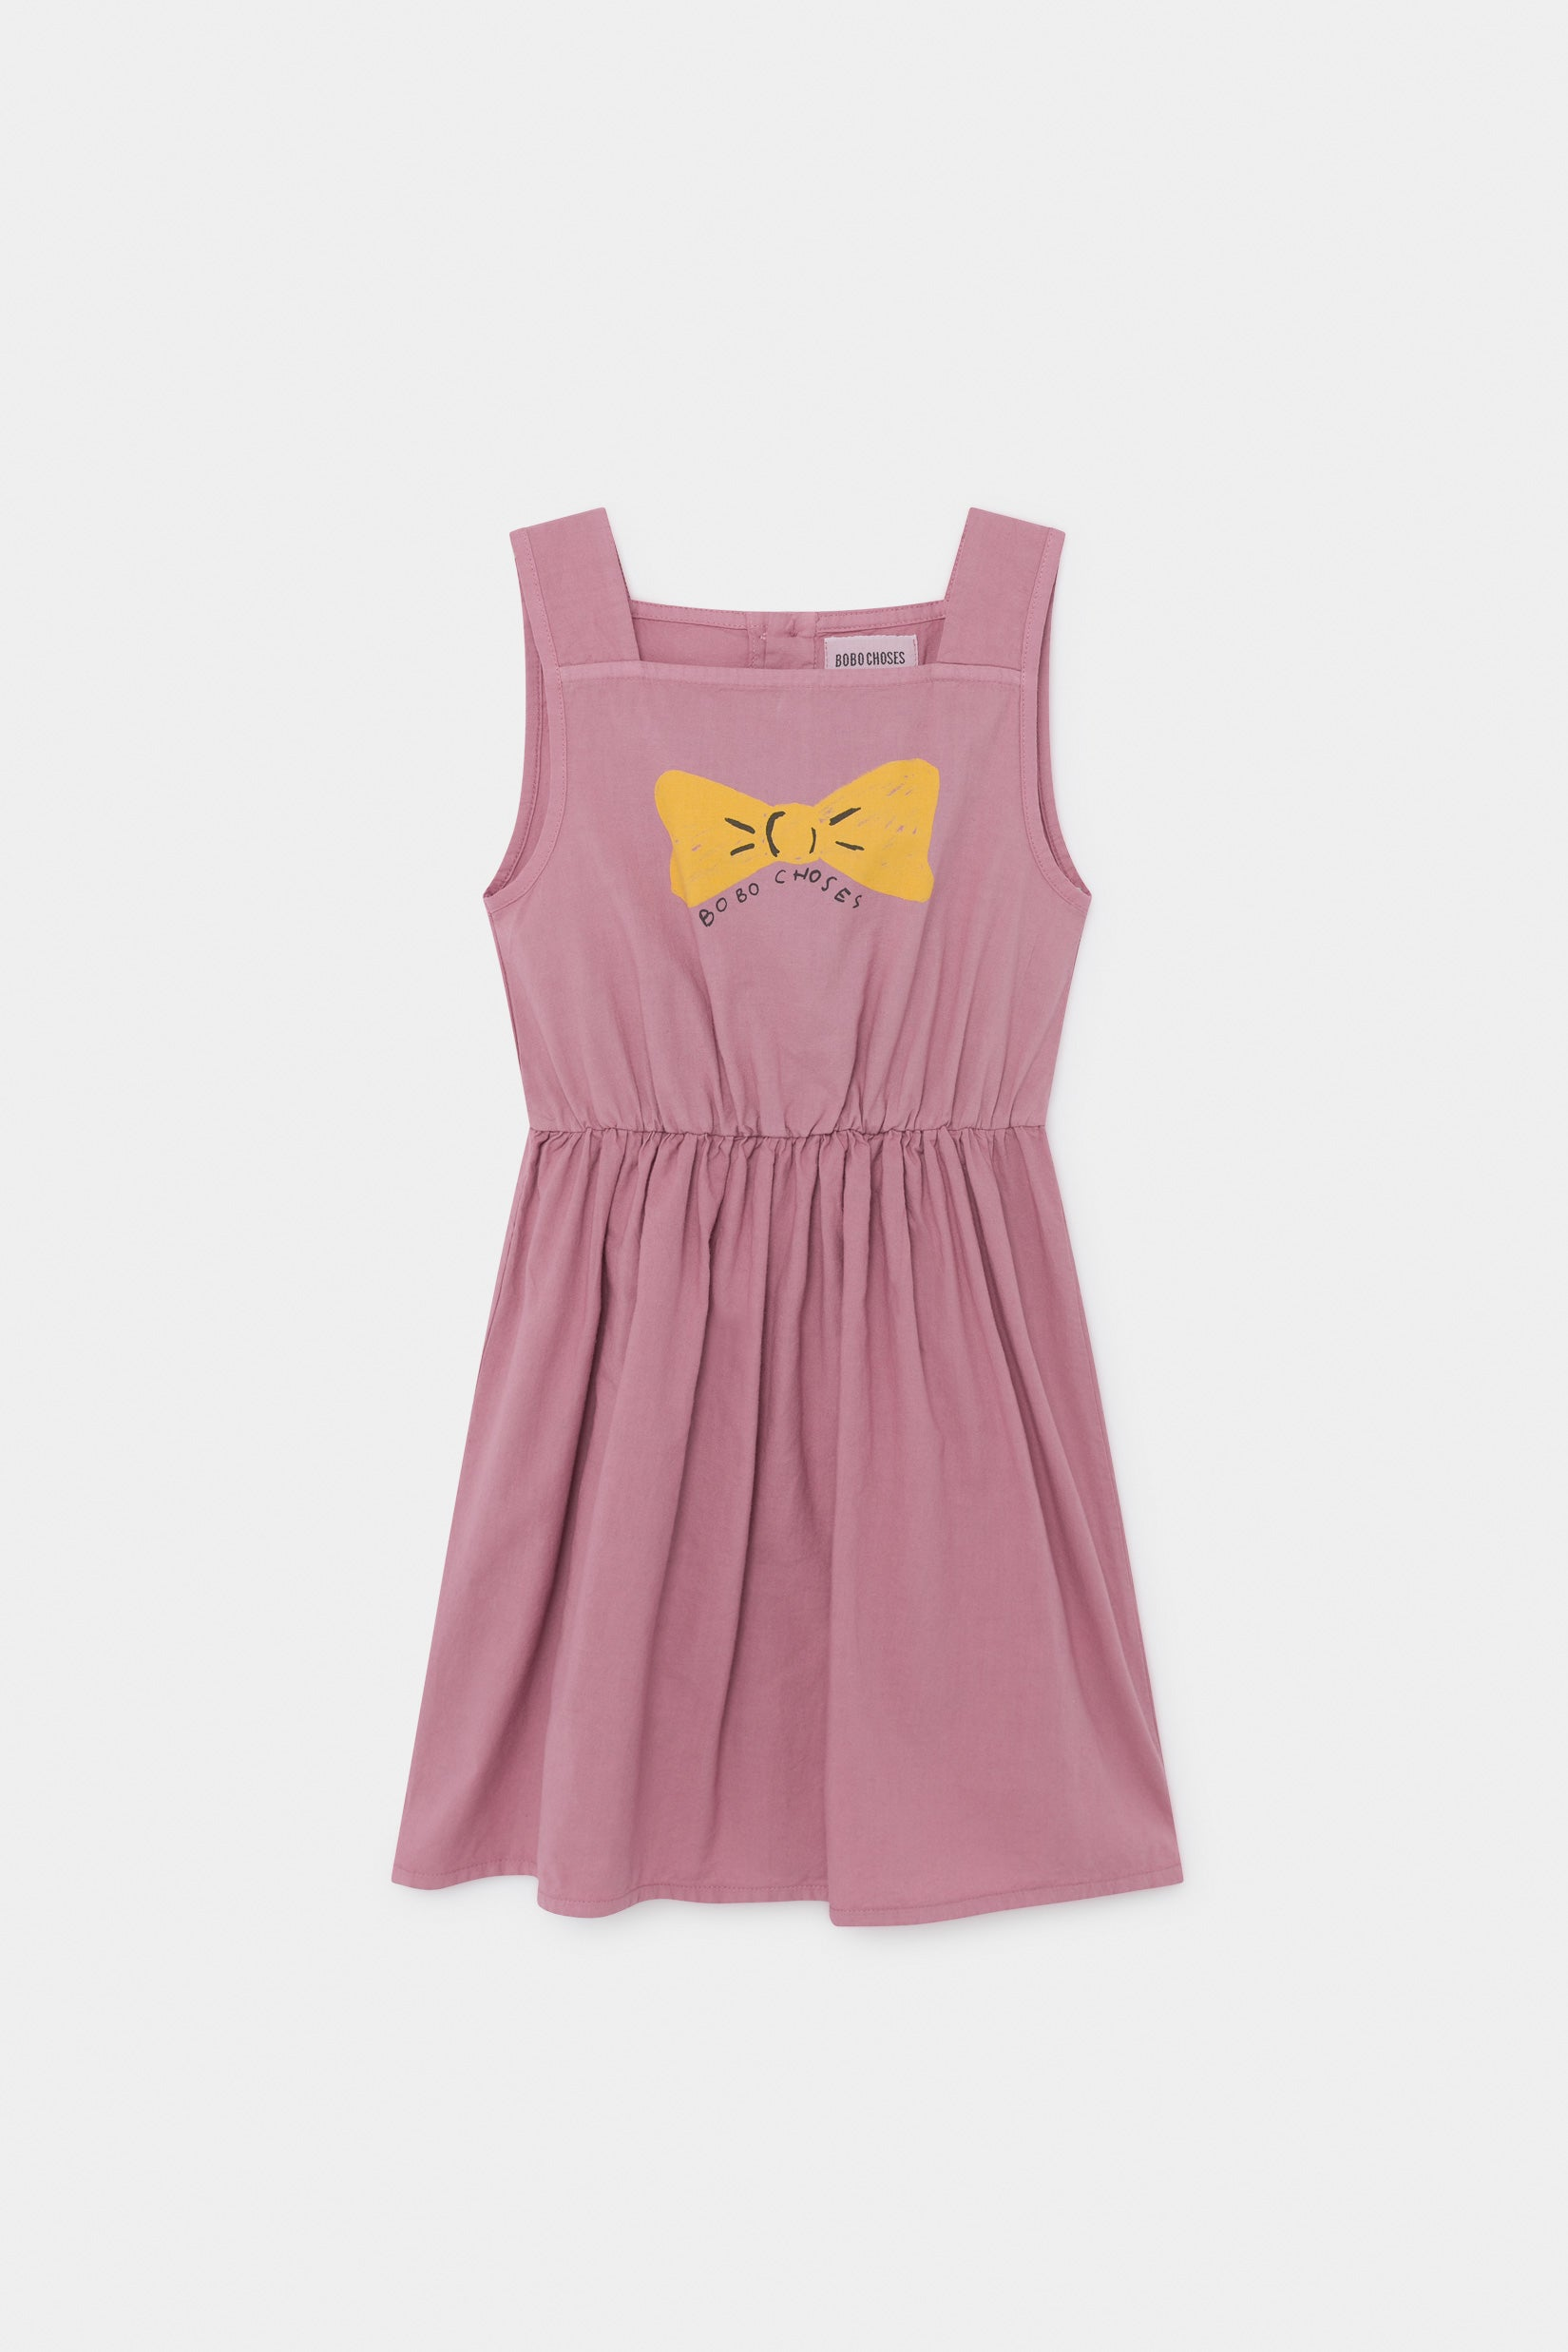 Bobo Choses Bow Woven Dress